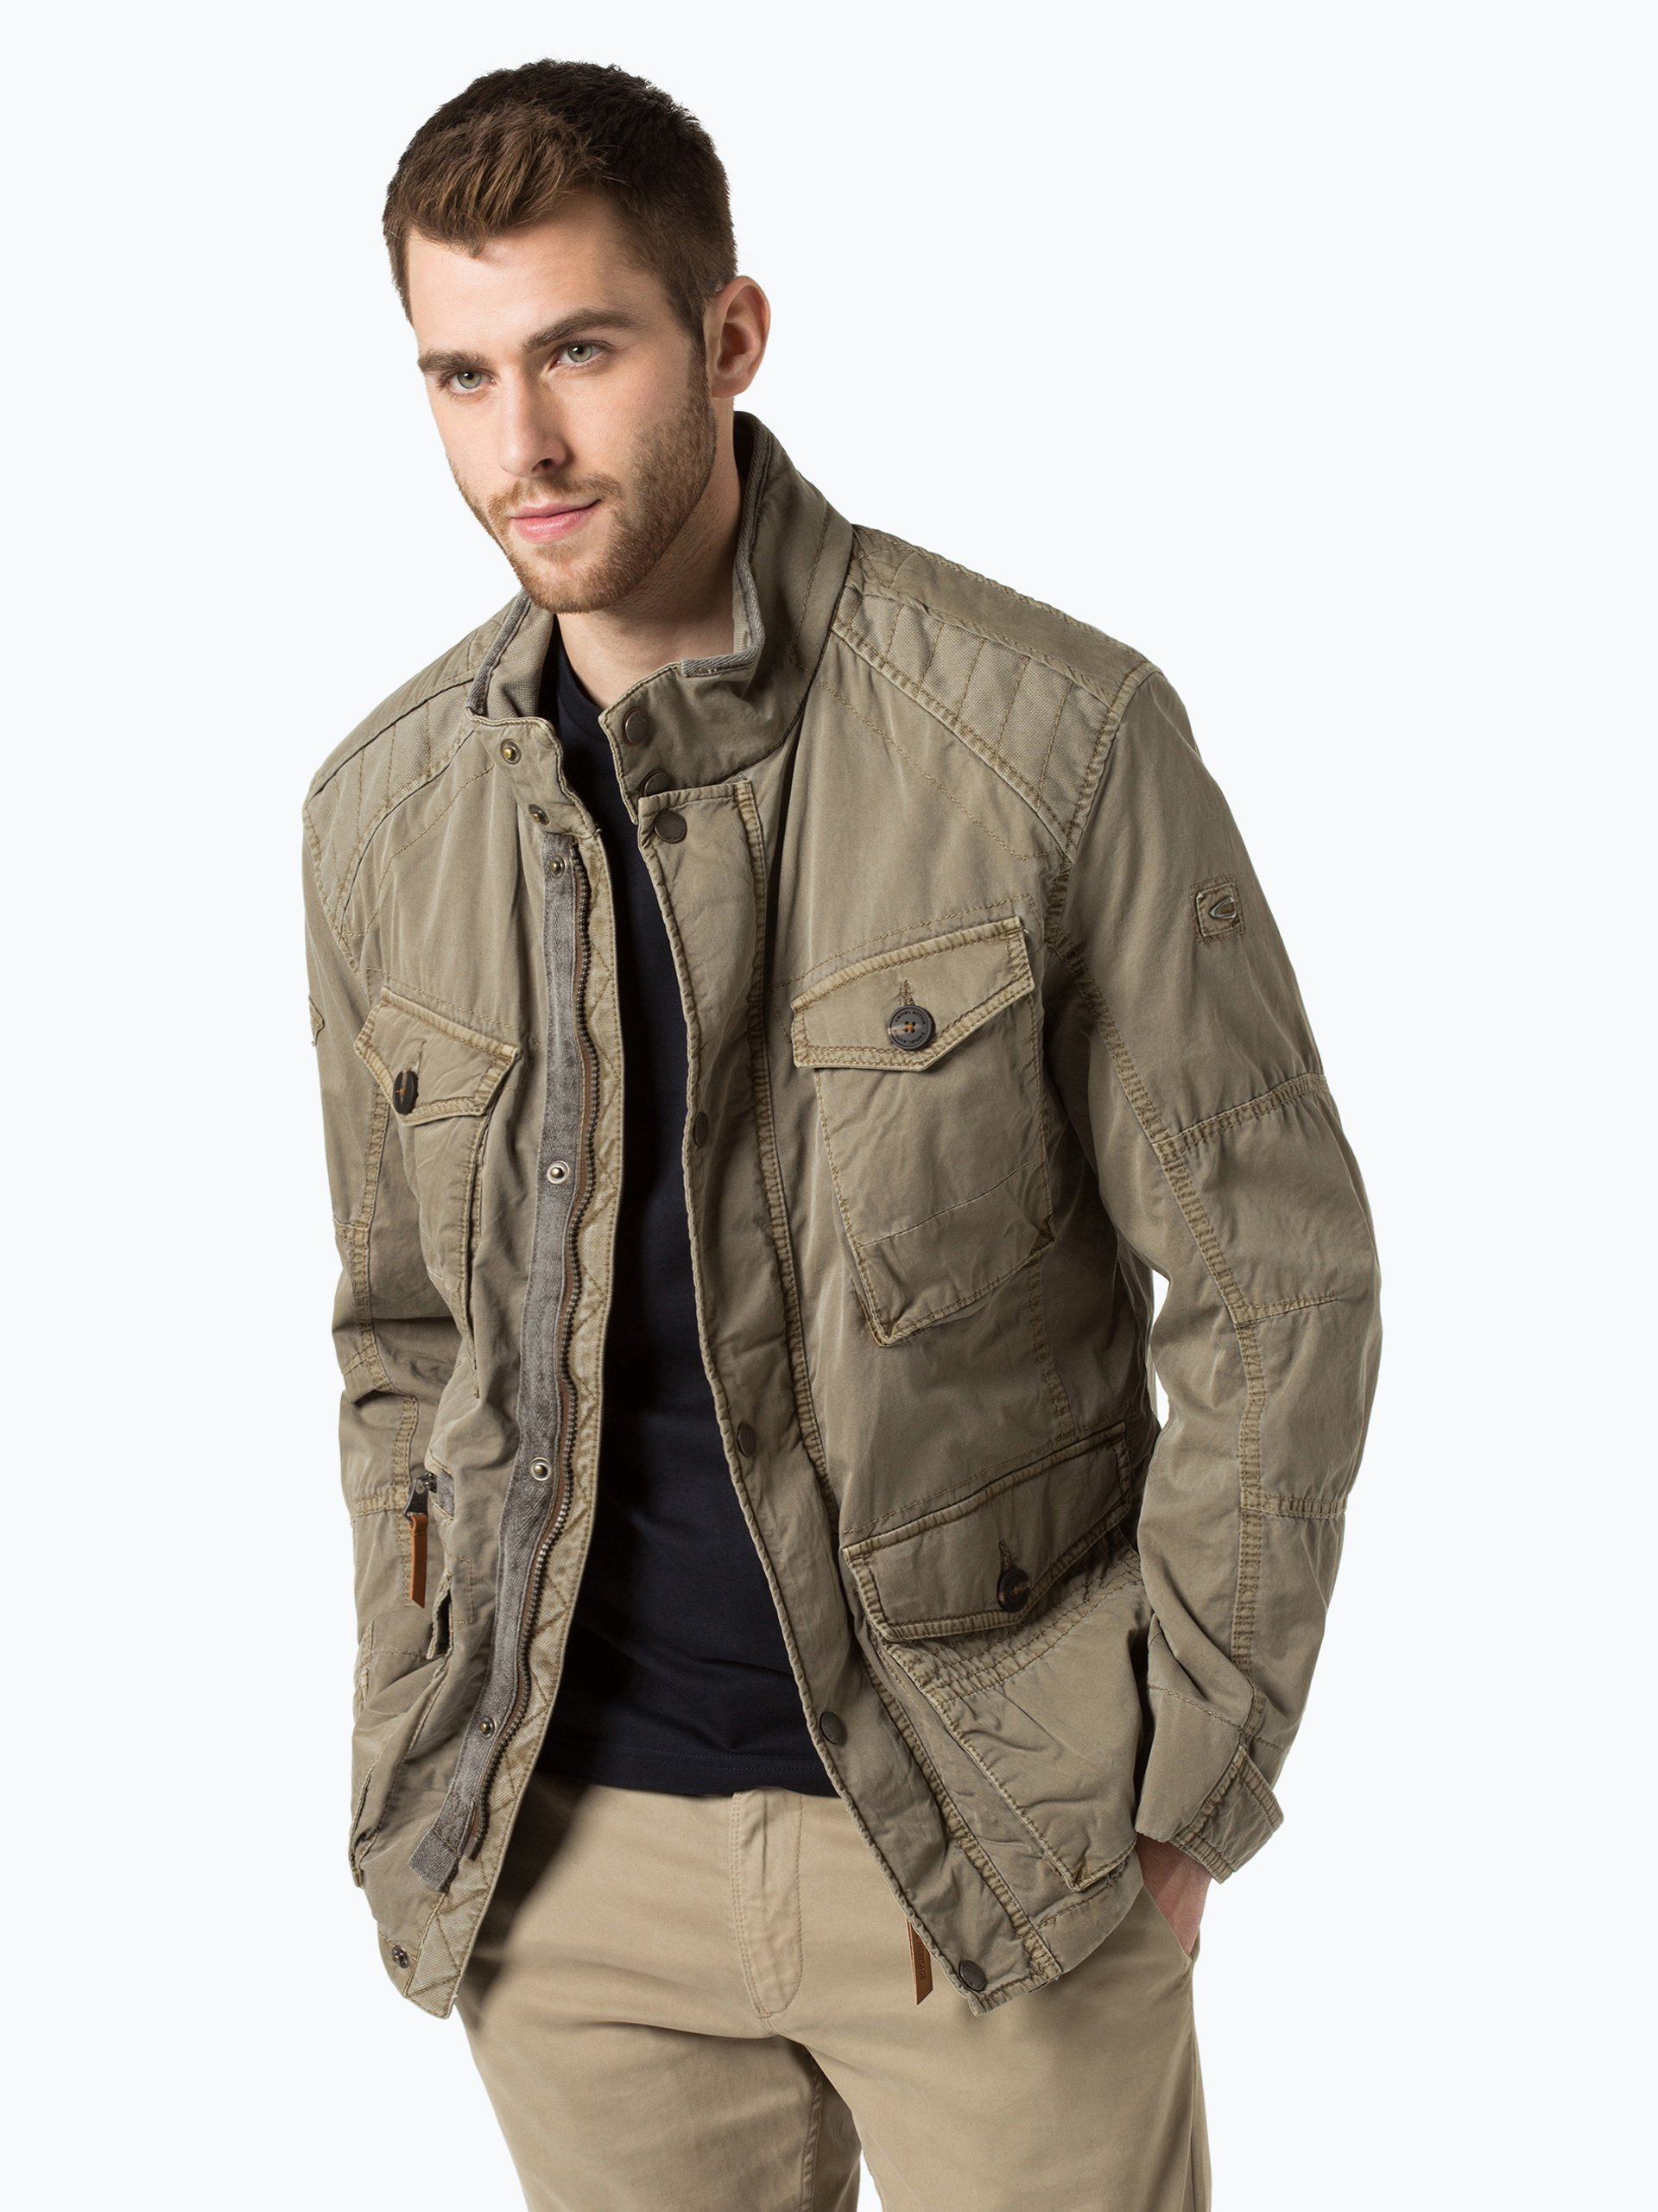 camel active herren jacke khaki uni online kaufen peek. Black Bedroom Furniture Sets. Home Design Ideas